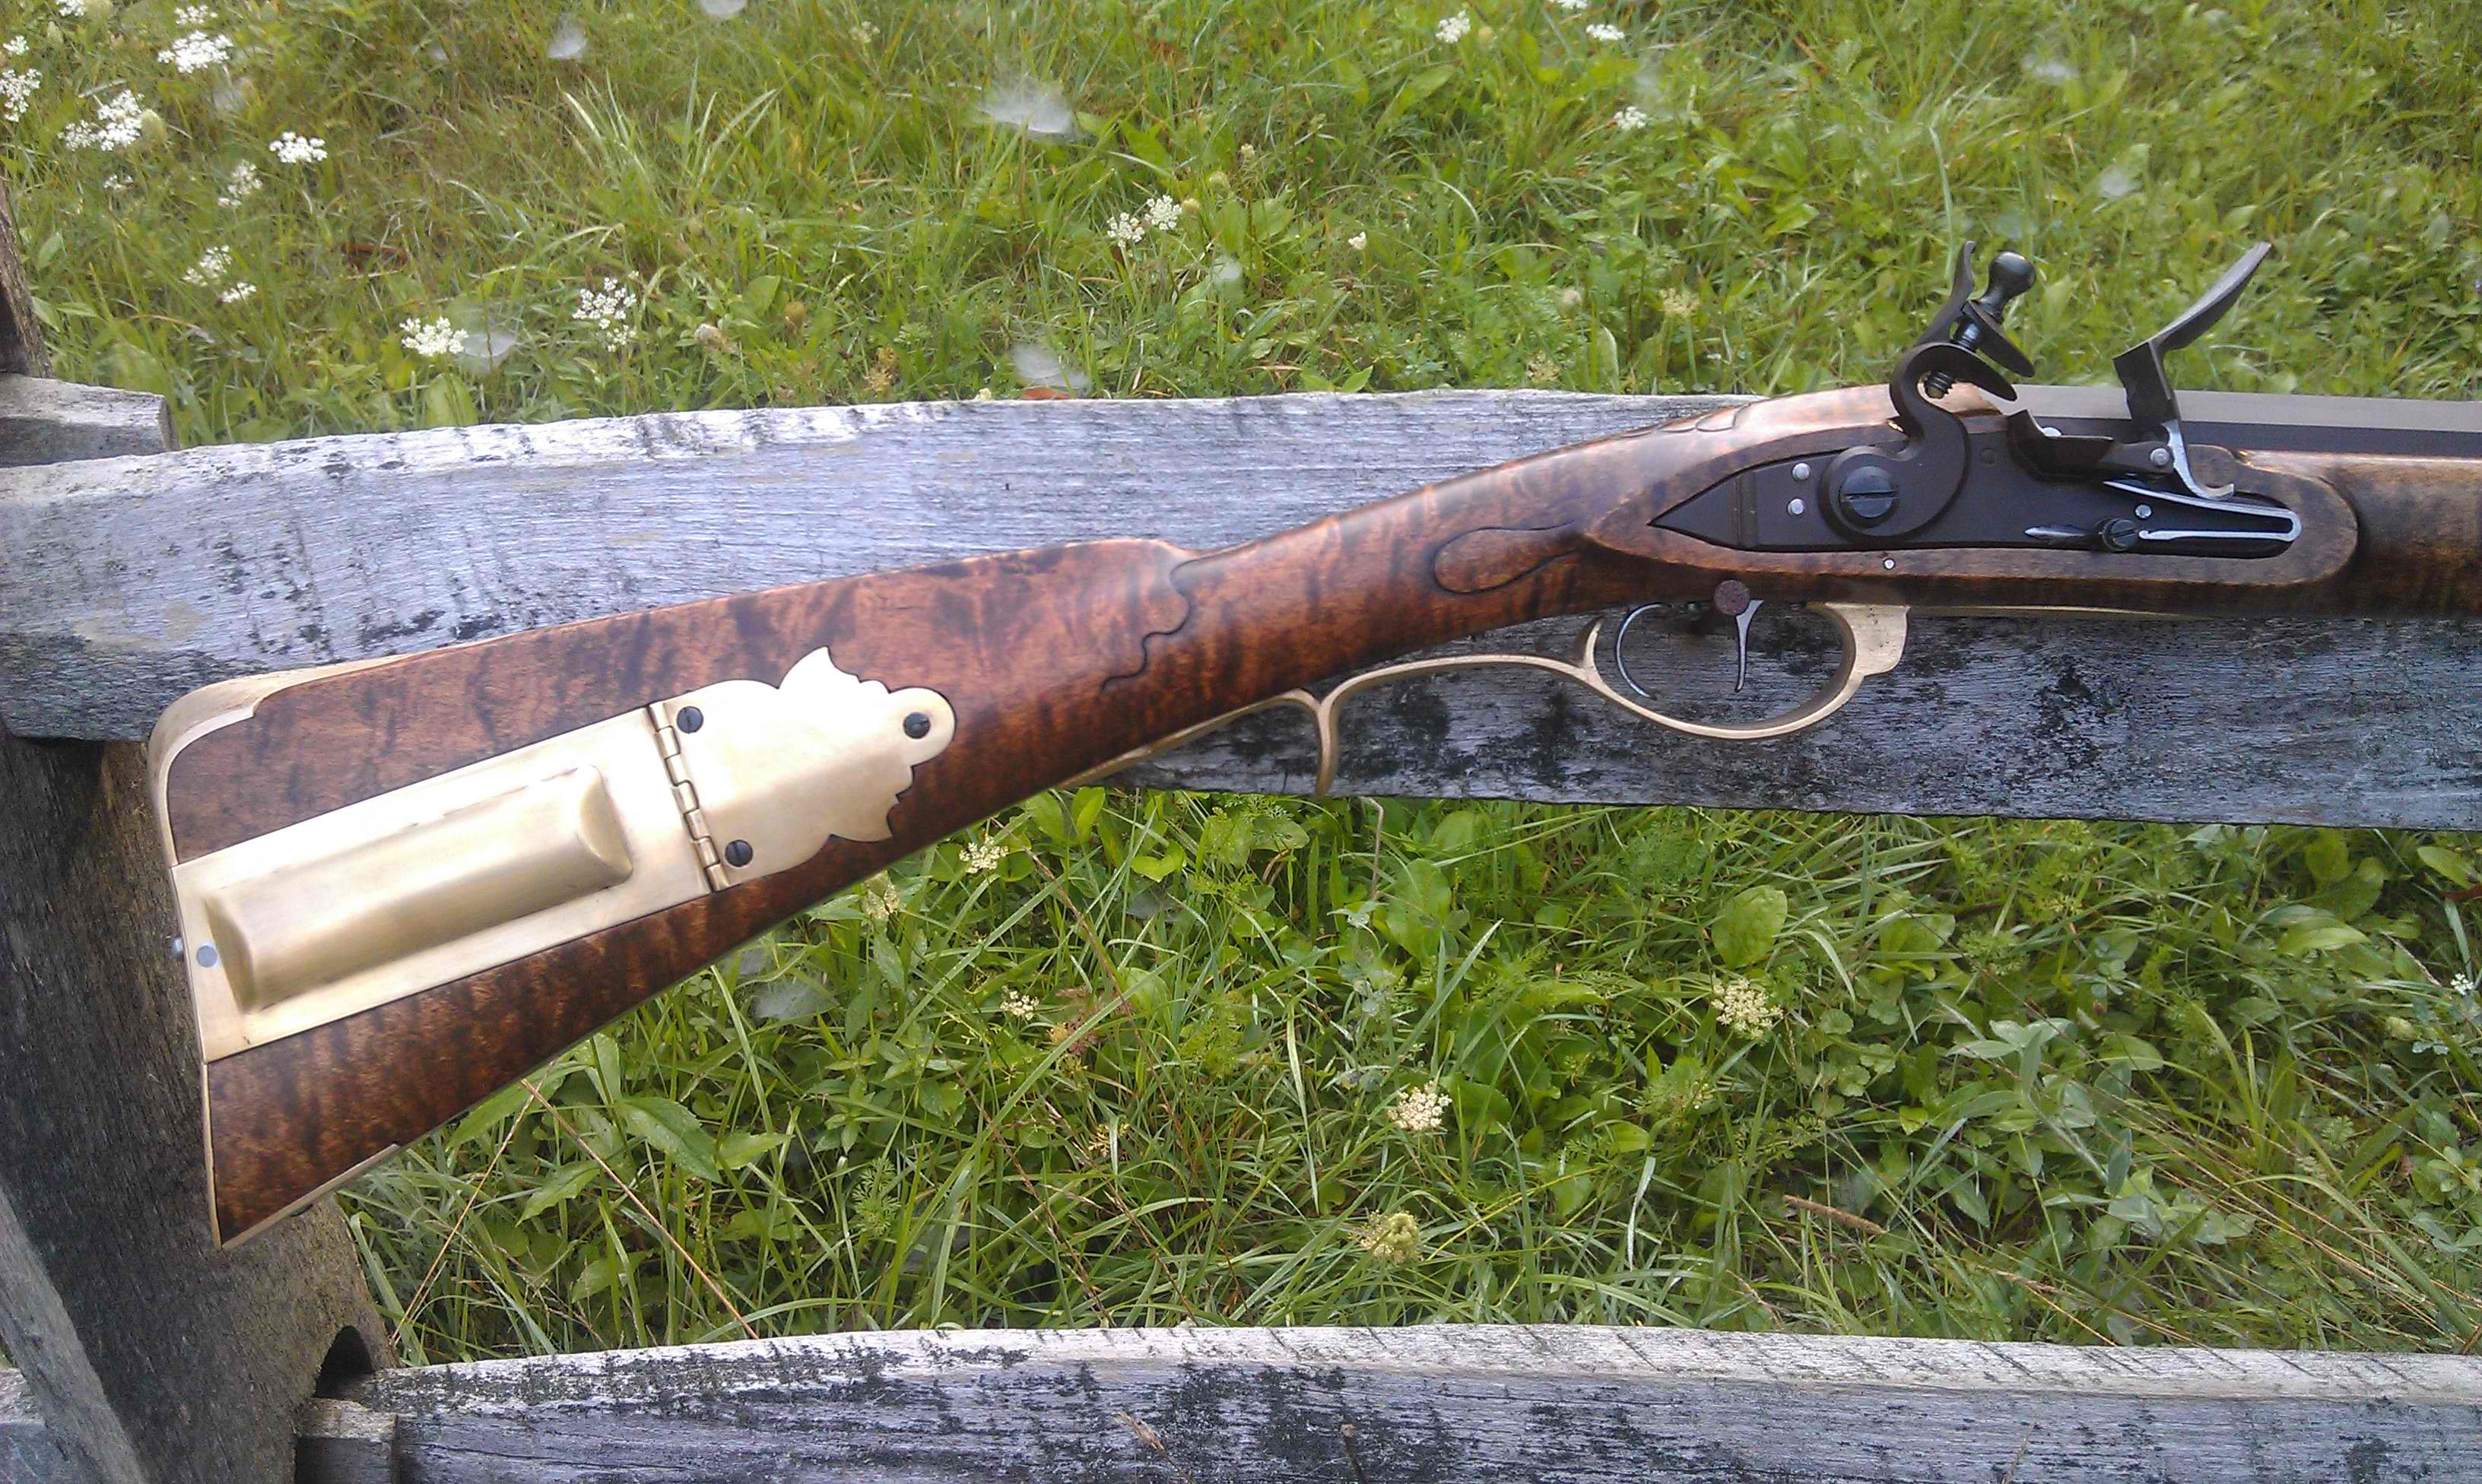 Pin On Flintlock Rifles And Accoutrements